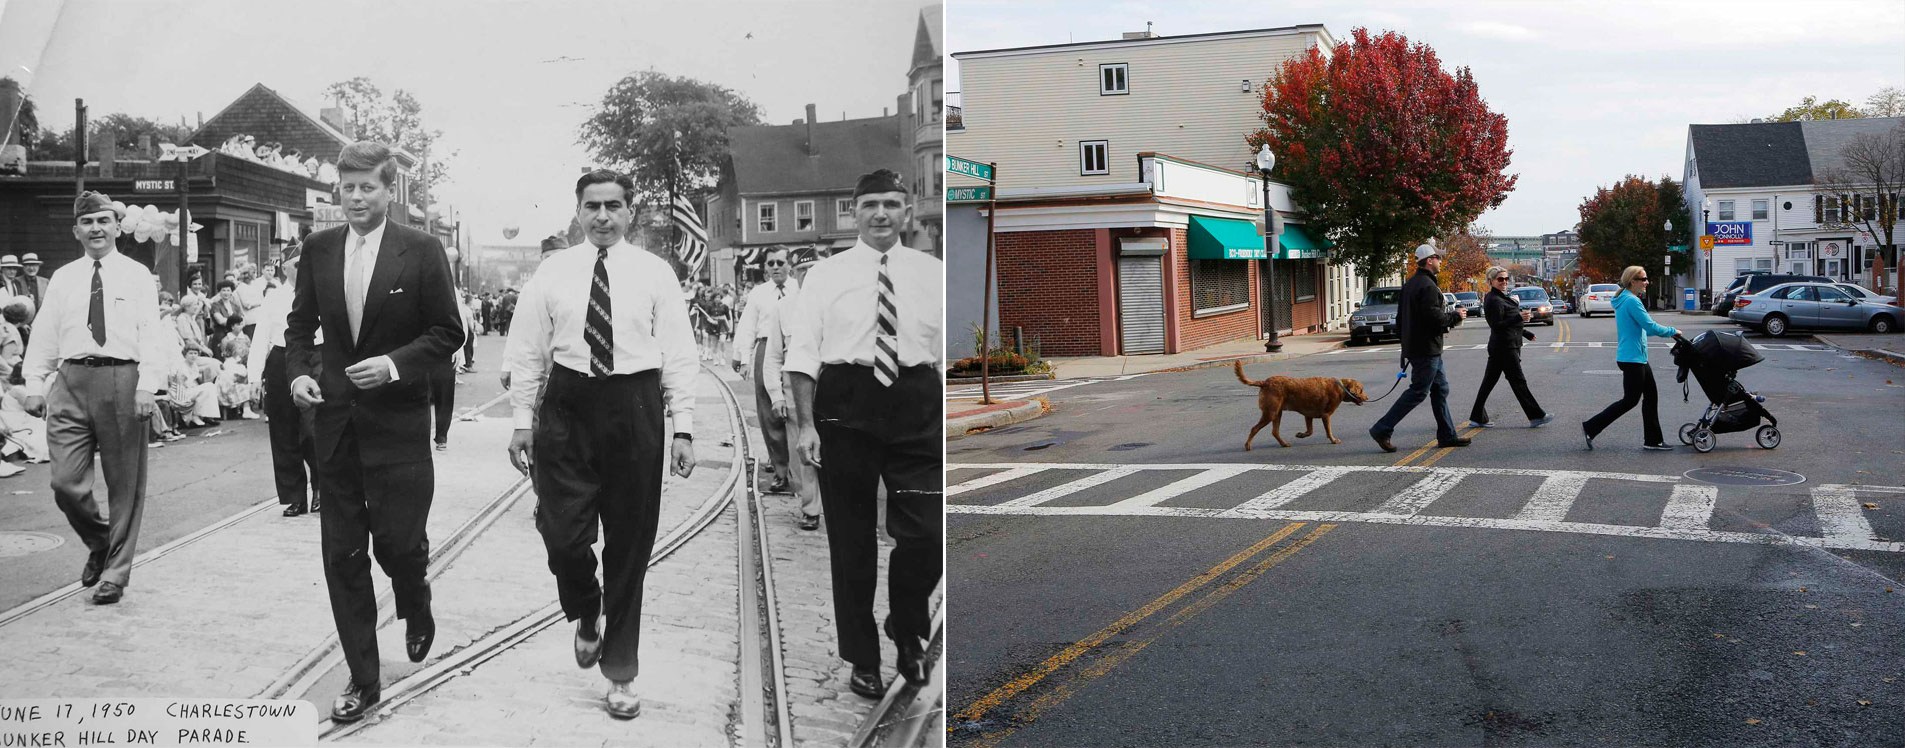 THEN: John F. Kennedy in the Bunker Hill Day Parade, Charlestown, MA, 1950. NOW: Same spot in 2013 (Source: Boston Globe)